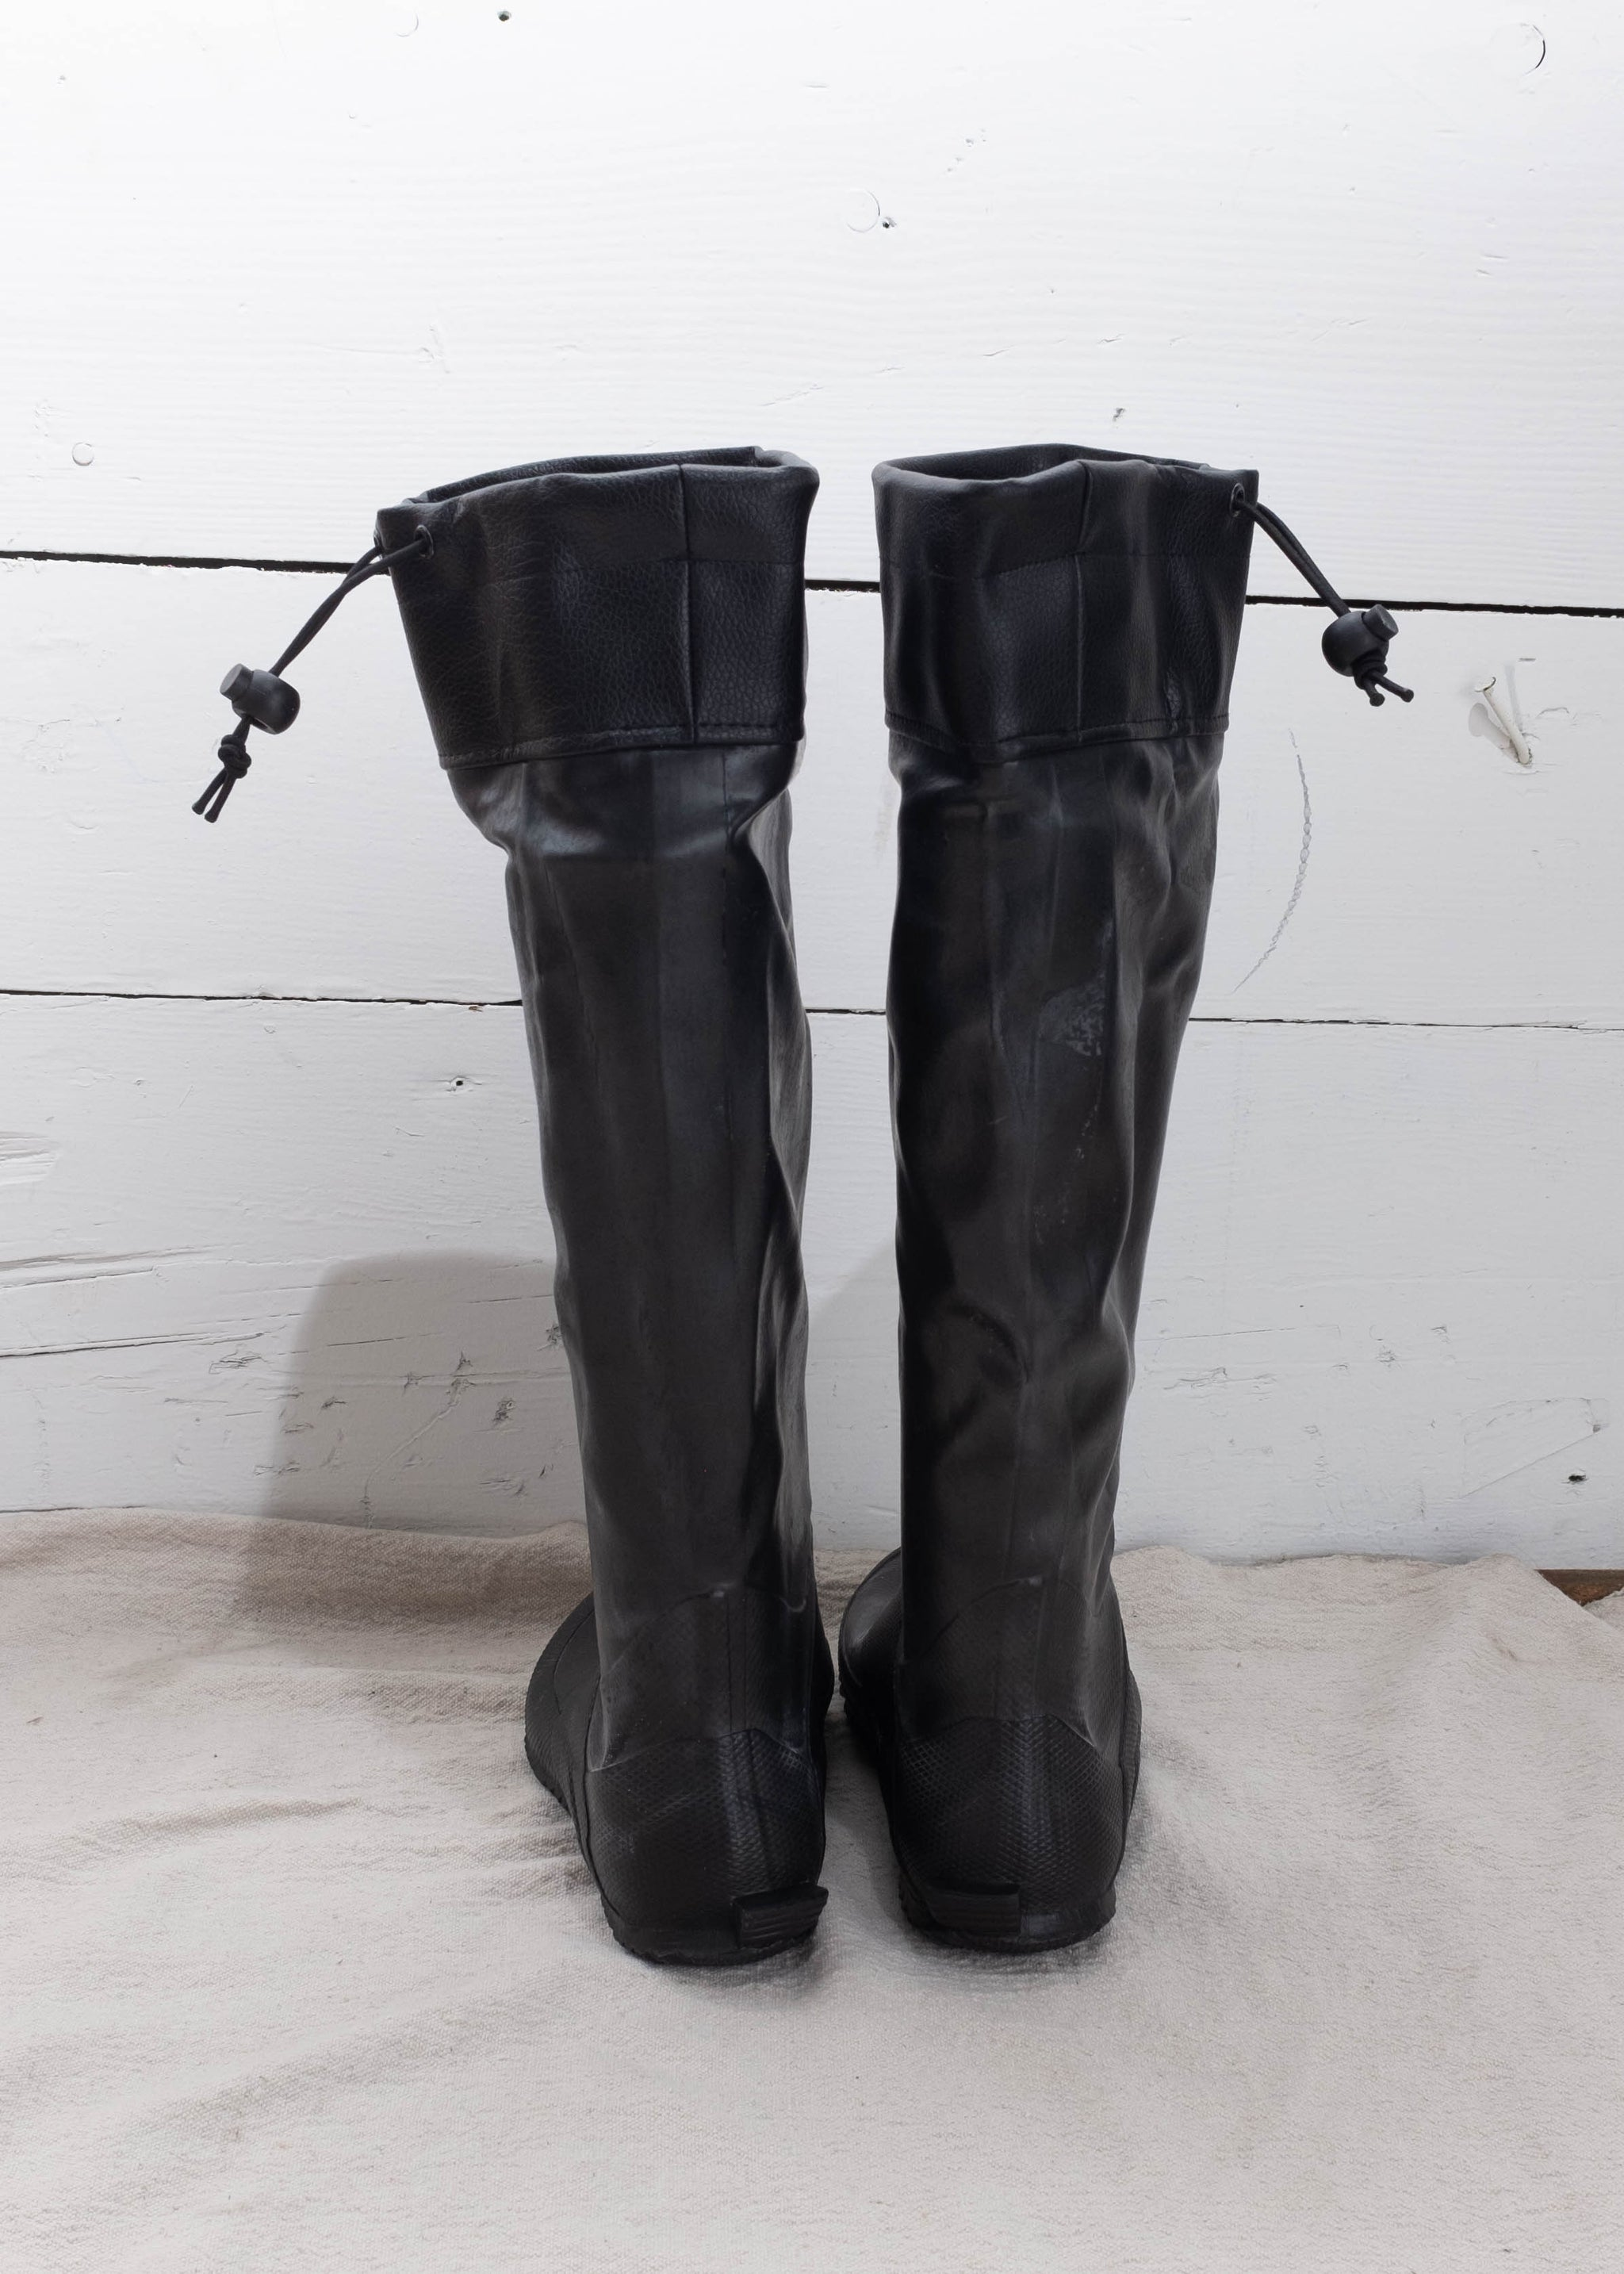 Back of black heavy duty rain boots with drawstring.